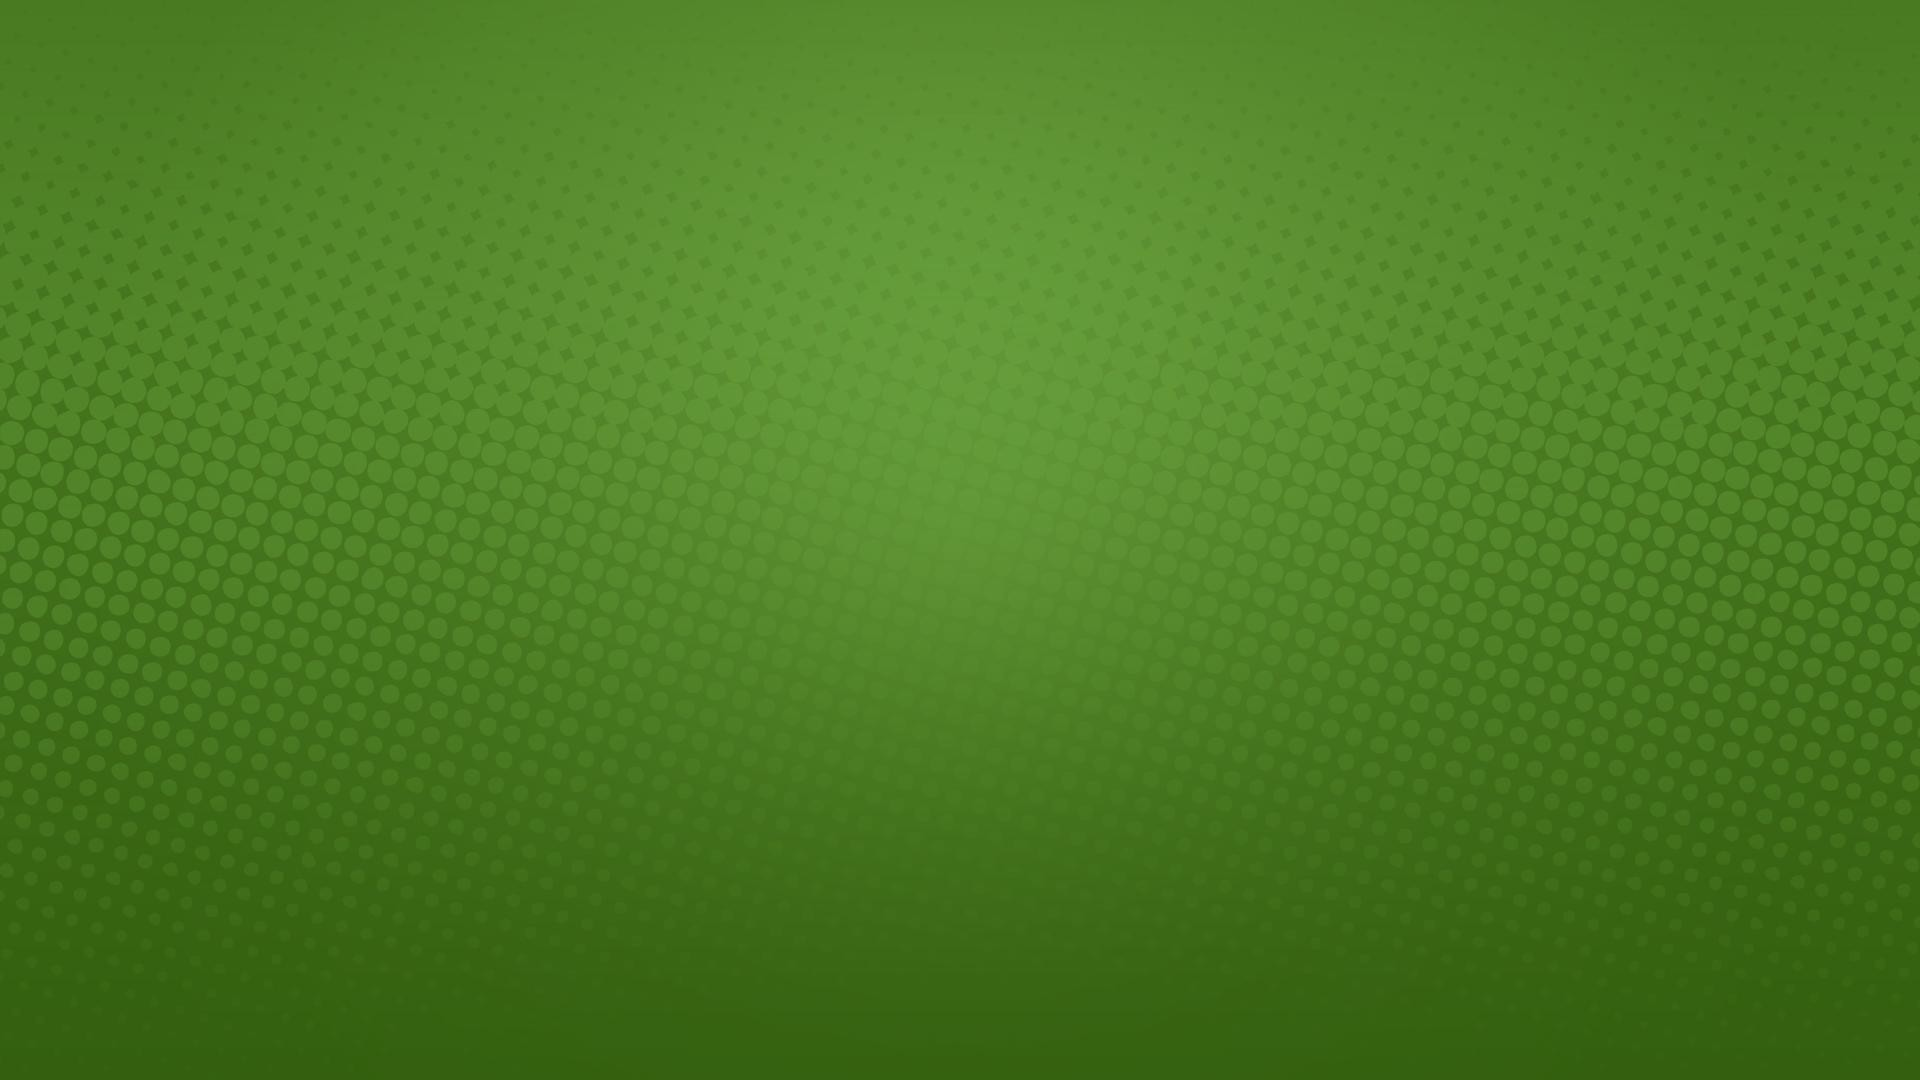 Green-dotted-pattern-HD-minimalistic-wallpaper